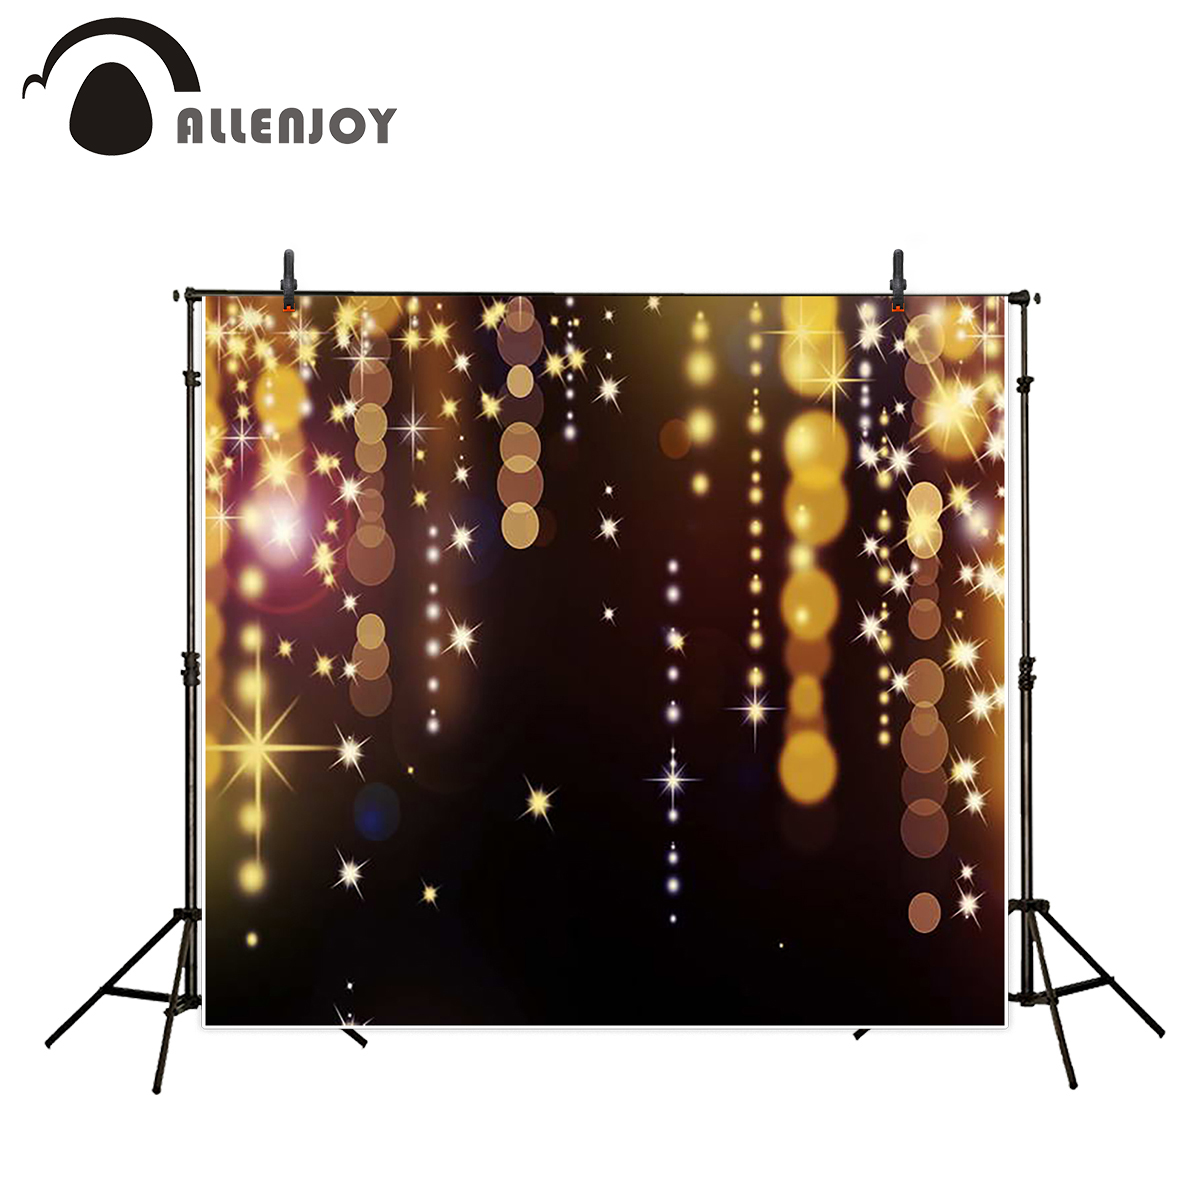 Allenjoy photographic background glitter gold black dots birthday backdrops professional photographic photo studio